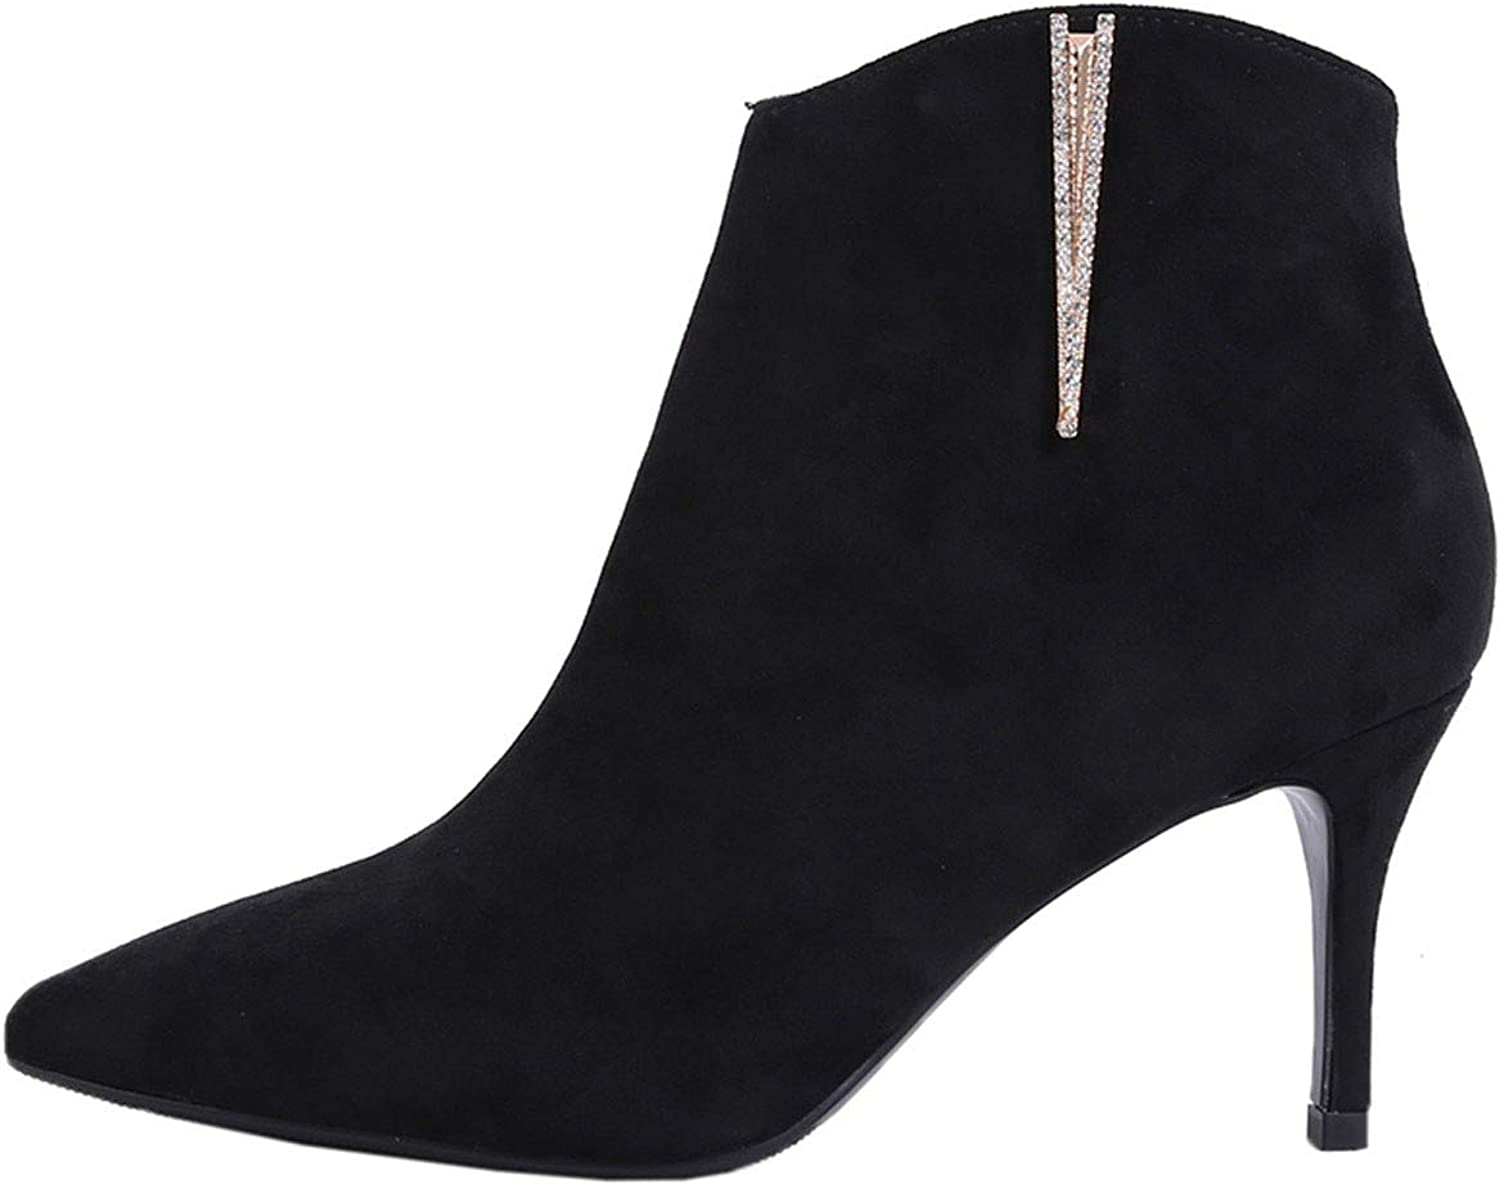 GTVERNH Women's shoes Side Zipper Velvet Small Heel Boots 7Cm Martin Boots Drill Pointed Head High-Heeled Bare Boots Women's shoes.